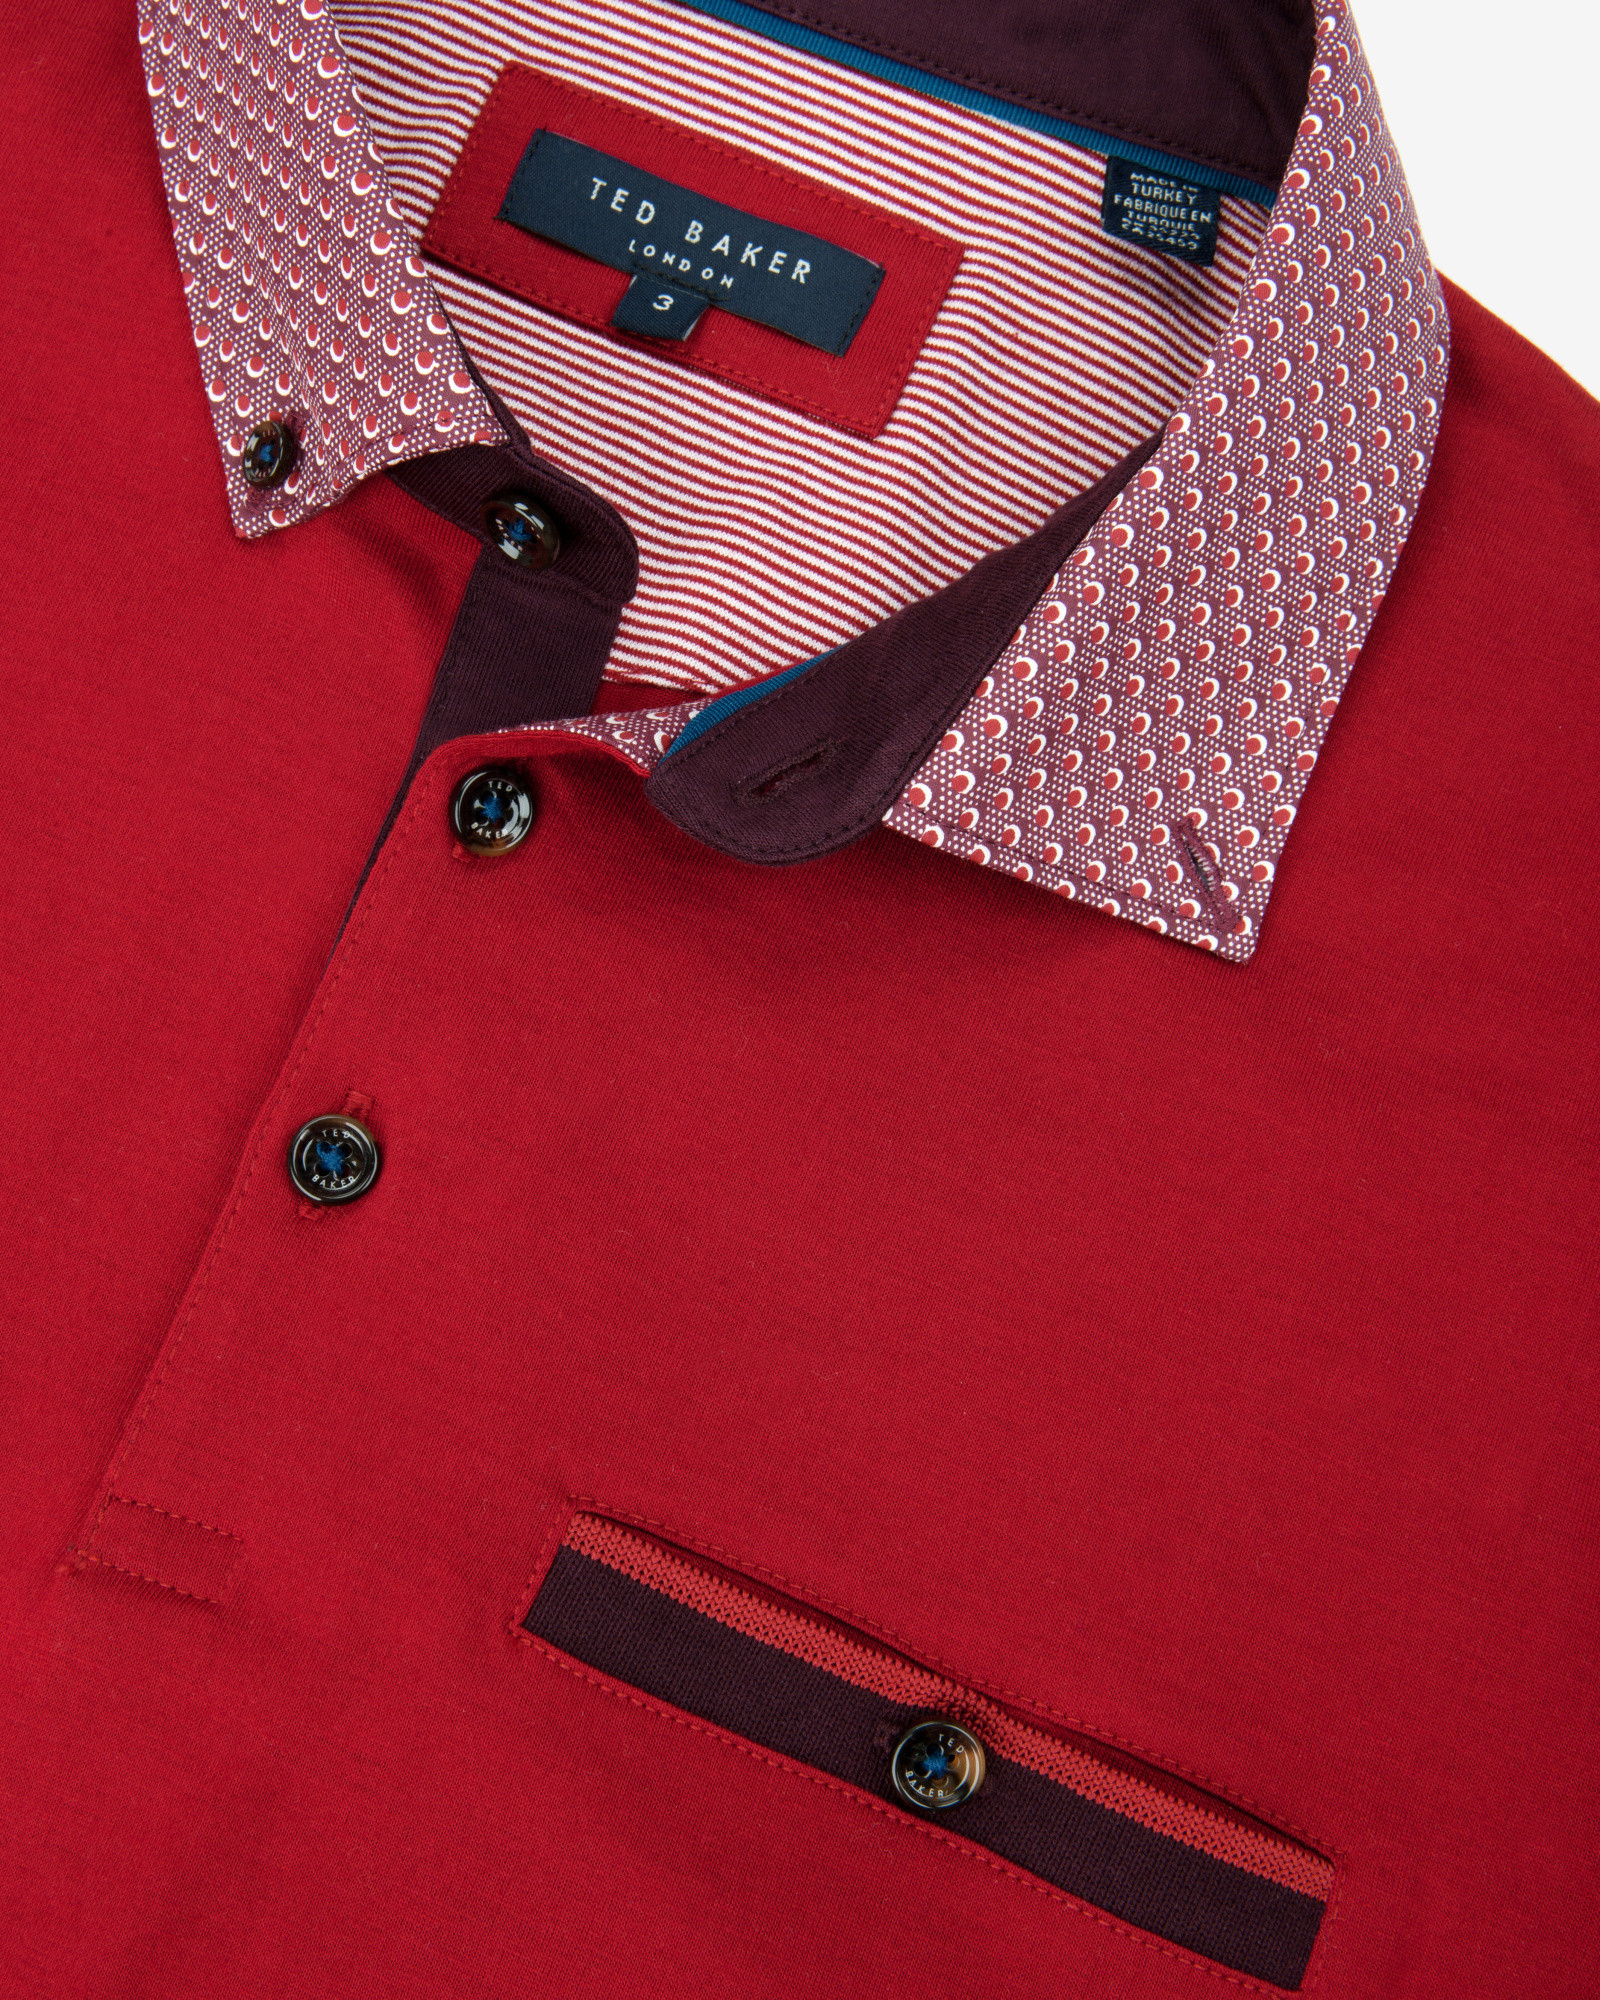 2f3bfd055e653 Ted Baker Printed Collar Polo Shirt in Red for Men - Lyst